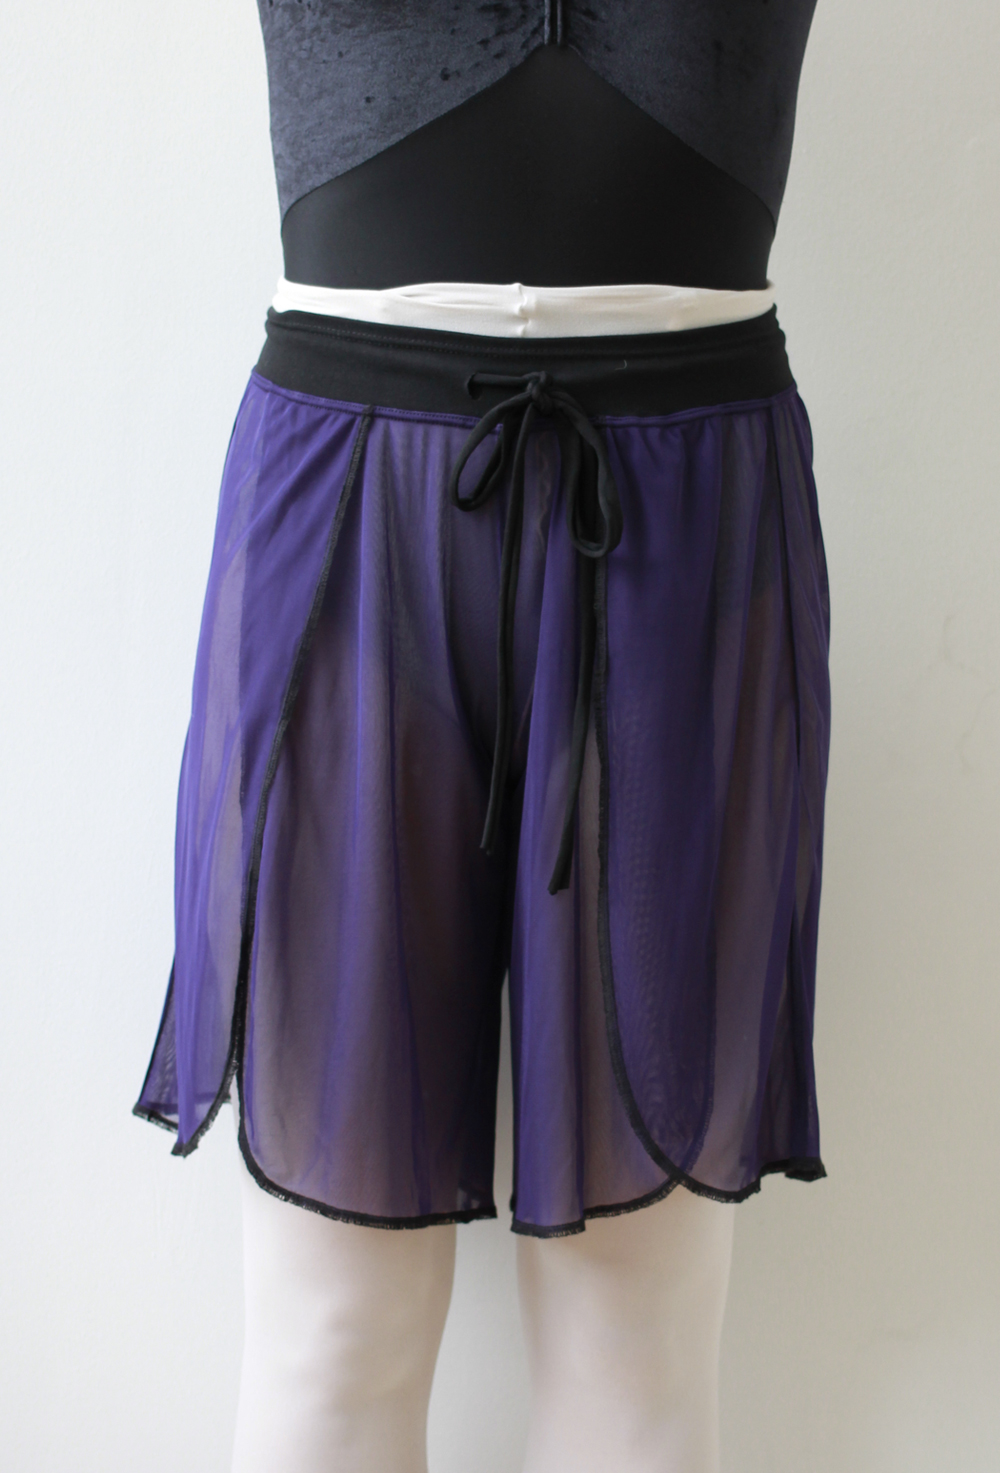 indigo_sheer_shorts_long_1.jpg